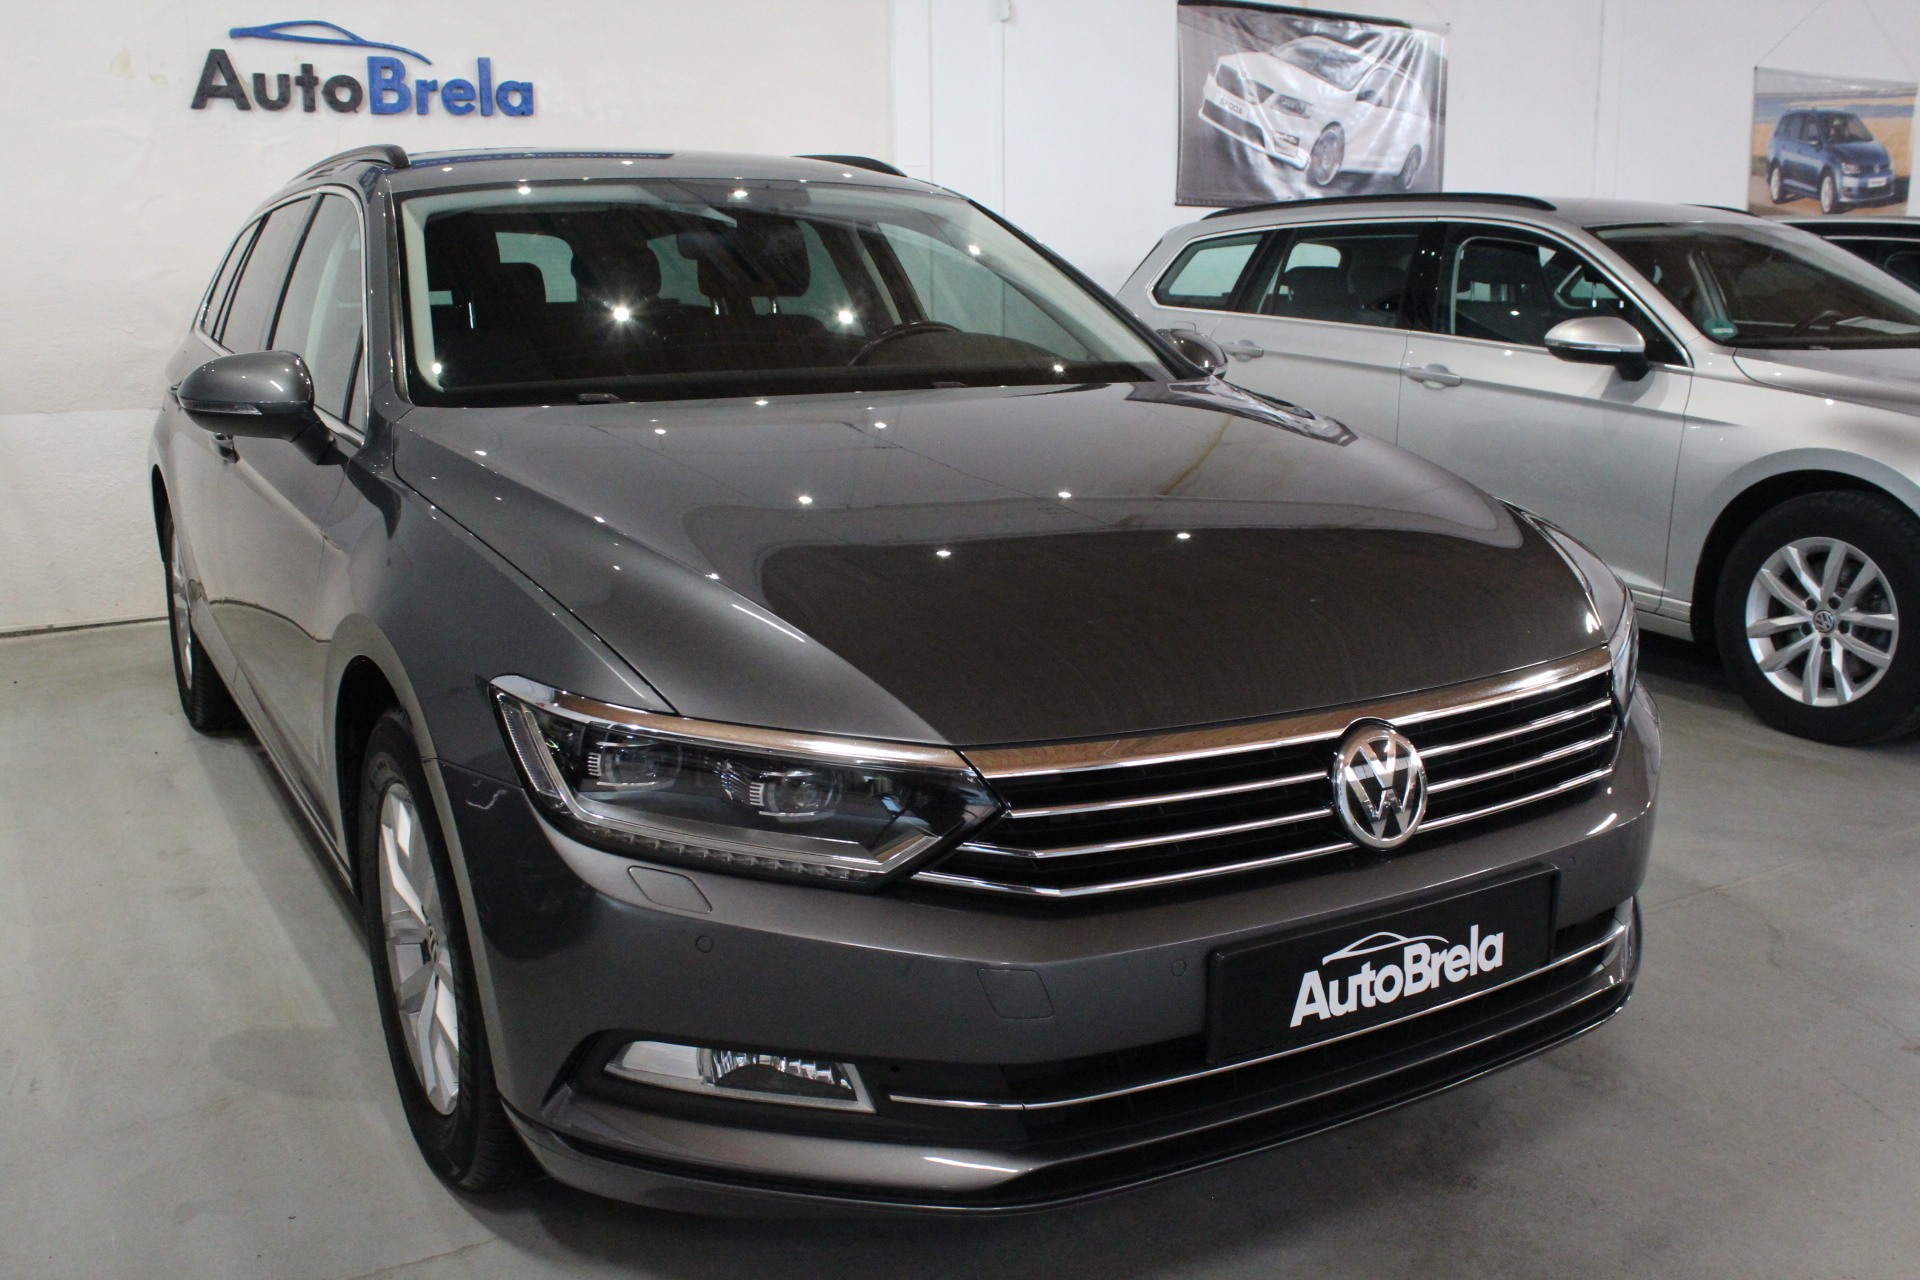 VW Passat B8 2.0 TDI DSG Highline FULL LED Info display Model 2017 - AutoBrela obrázek